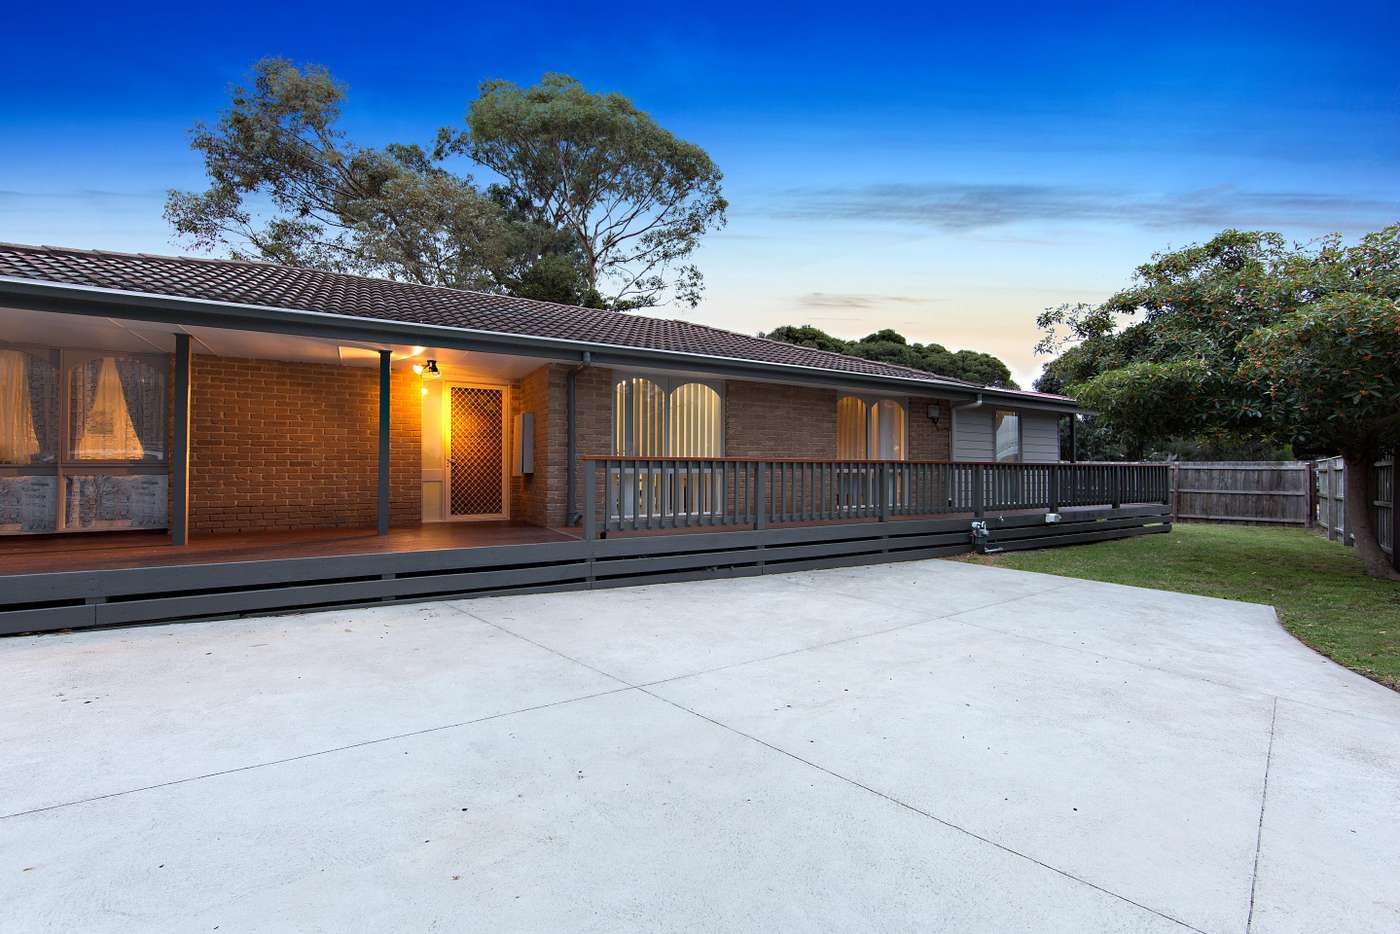 Main view of Homely house listing, 14 Bloom Street, Frankston VIC 3199